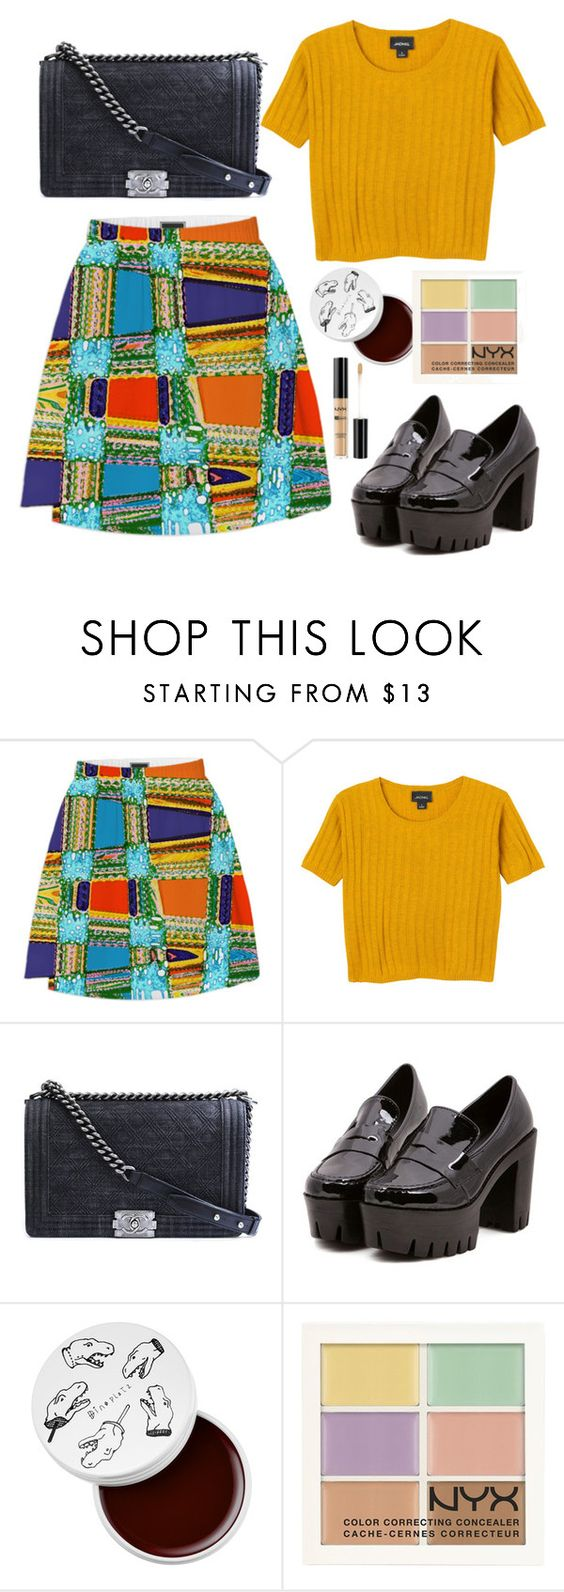 """Untitled #215"" by dlnphung ❤ liked on Polyvore featuring Monki, Chanel, too cool for school and NYX"